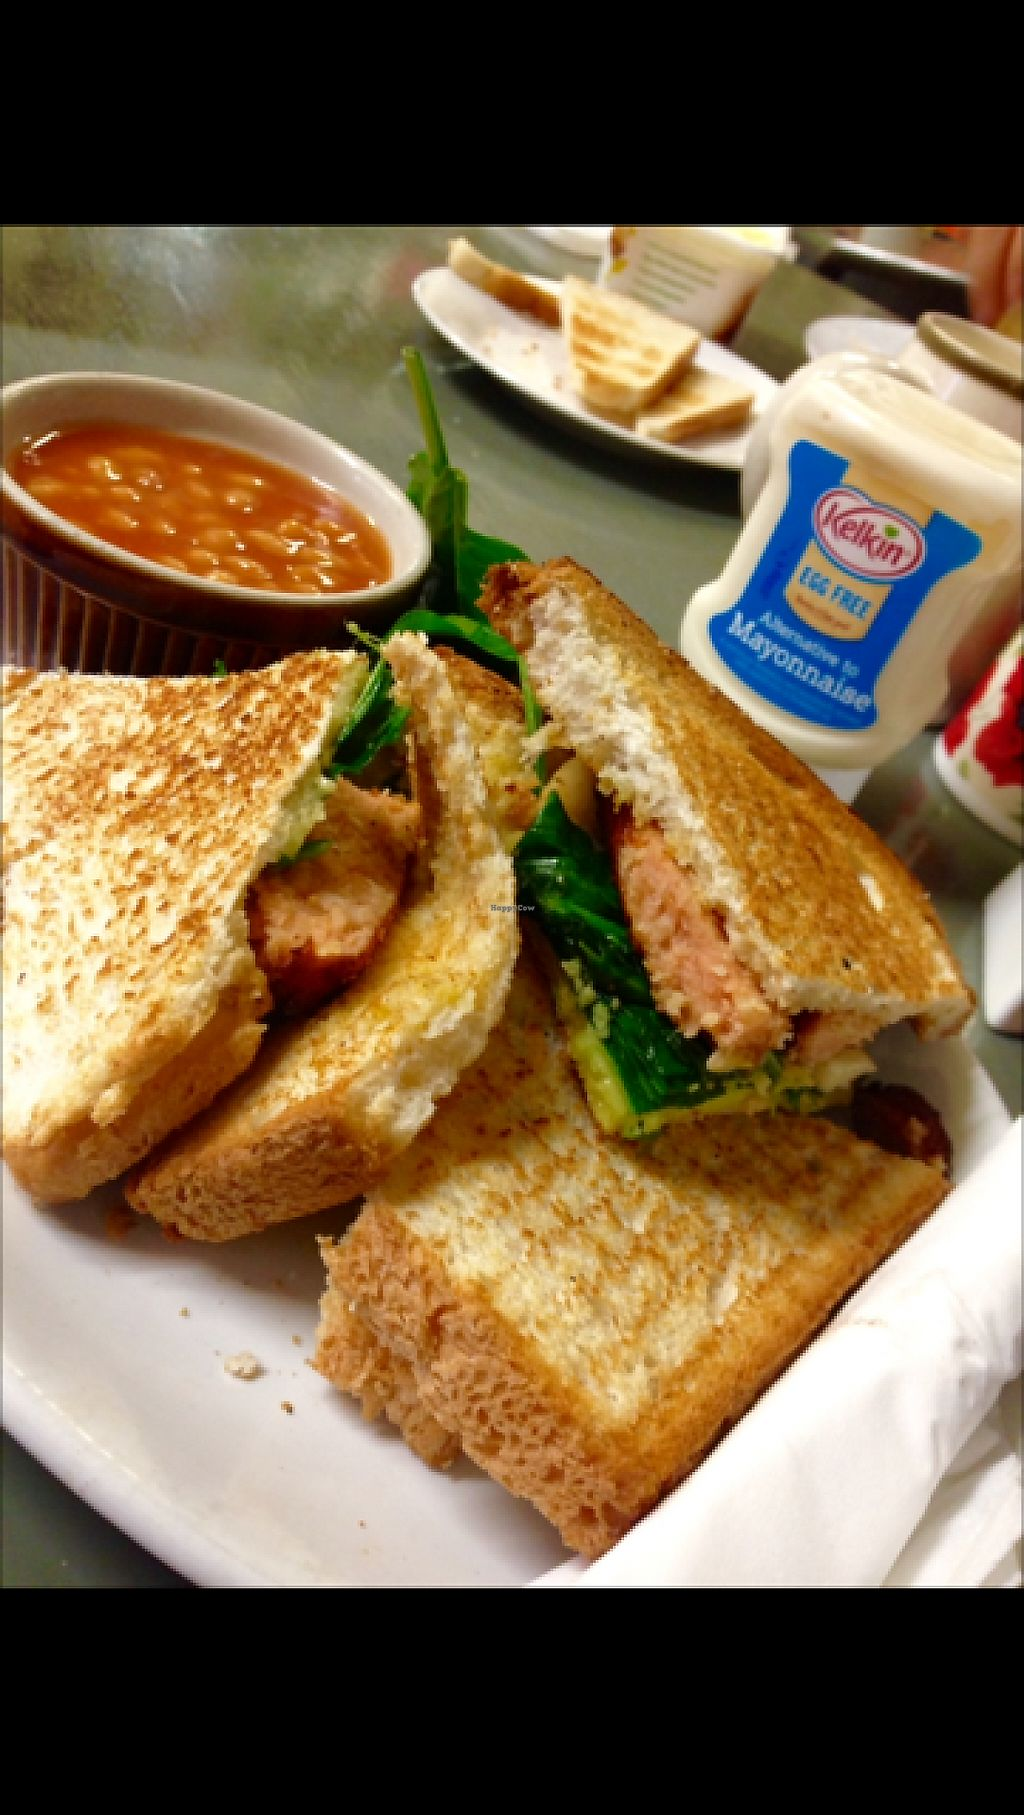 "Photo of Bia Blasta  by <a href=""/members/profile/Tamasin"">Tamasin</a> <br/>And in answer to that ""but what about the bacon?!"" - Bia Blasta has the vegan BLT, and more, answer! ;b <br/> May 15, 2017  - <a href='/contact/abuse/image/34544/259162'>Report</a>"